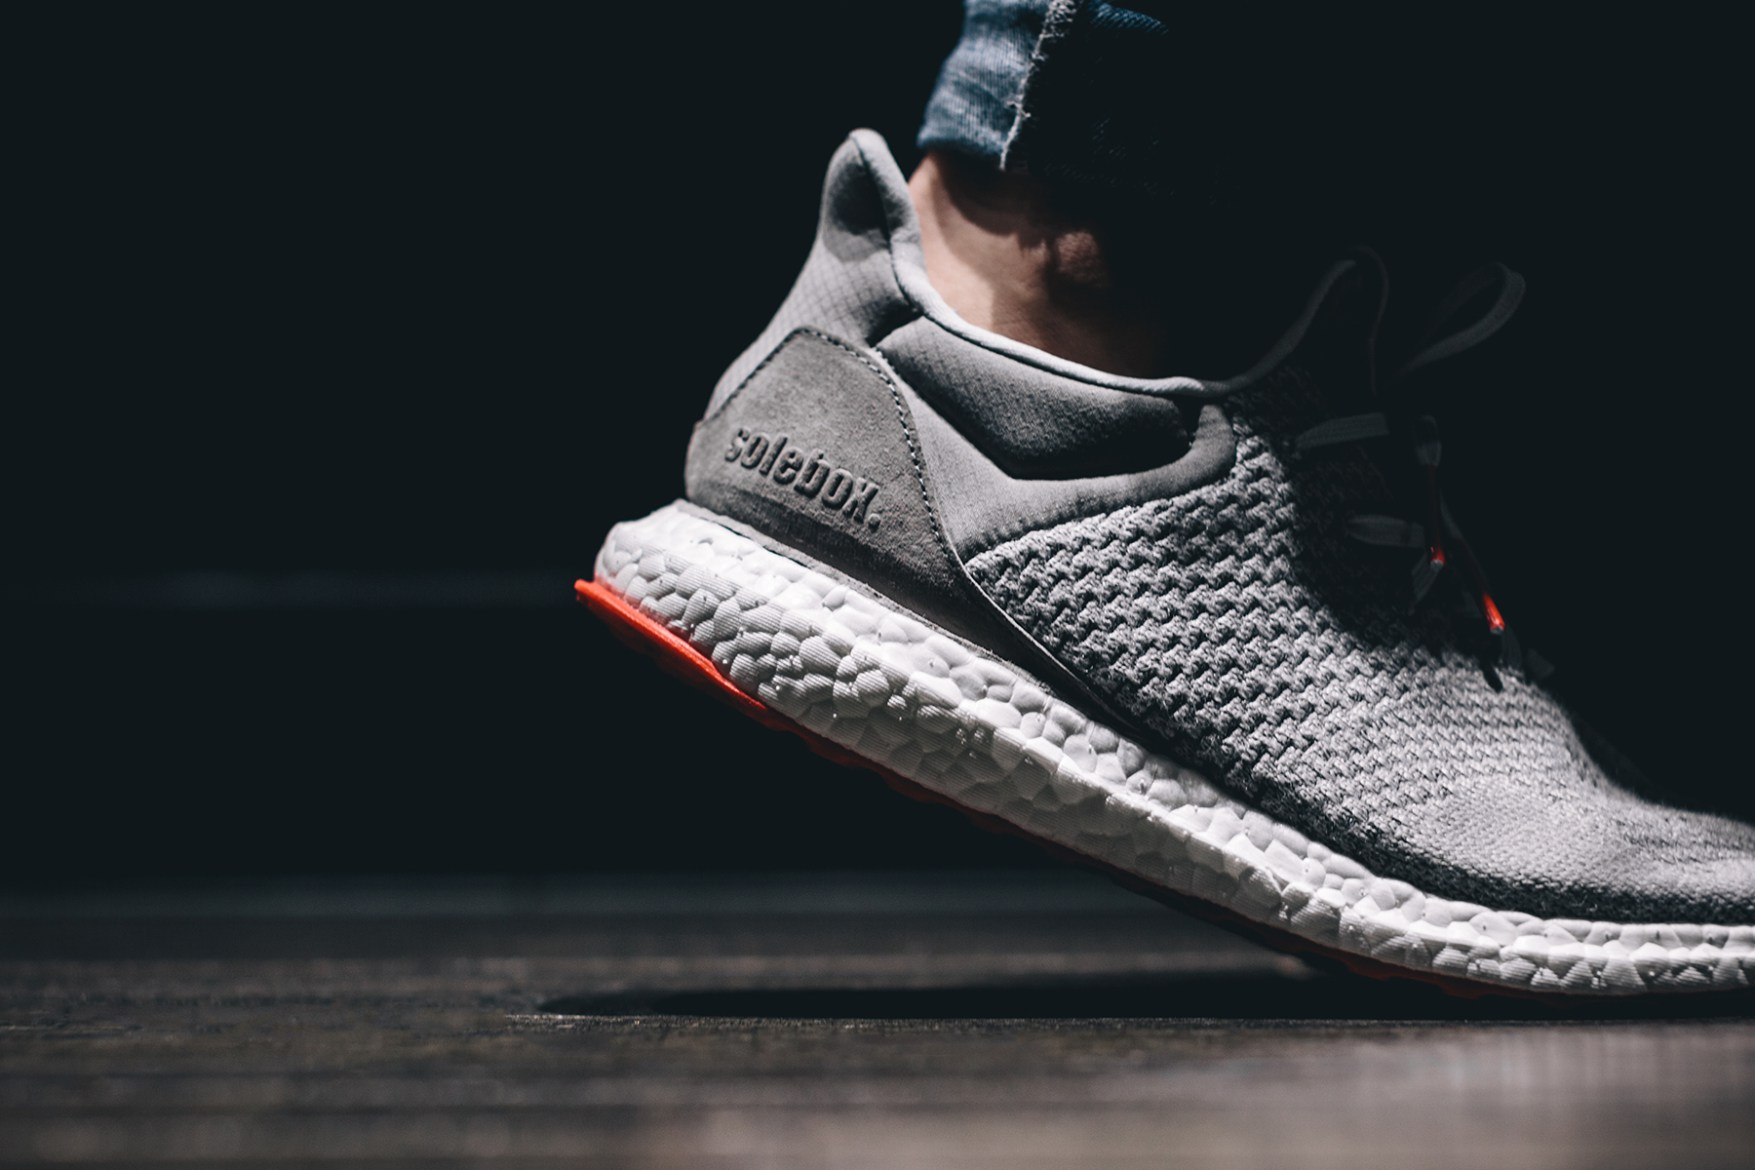 a-closer-look-at-the-solebox-x-adidas-consortium-ultra-boost-uncaged-6